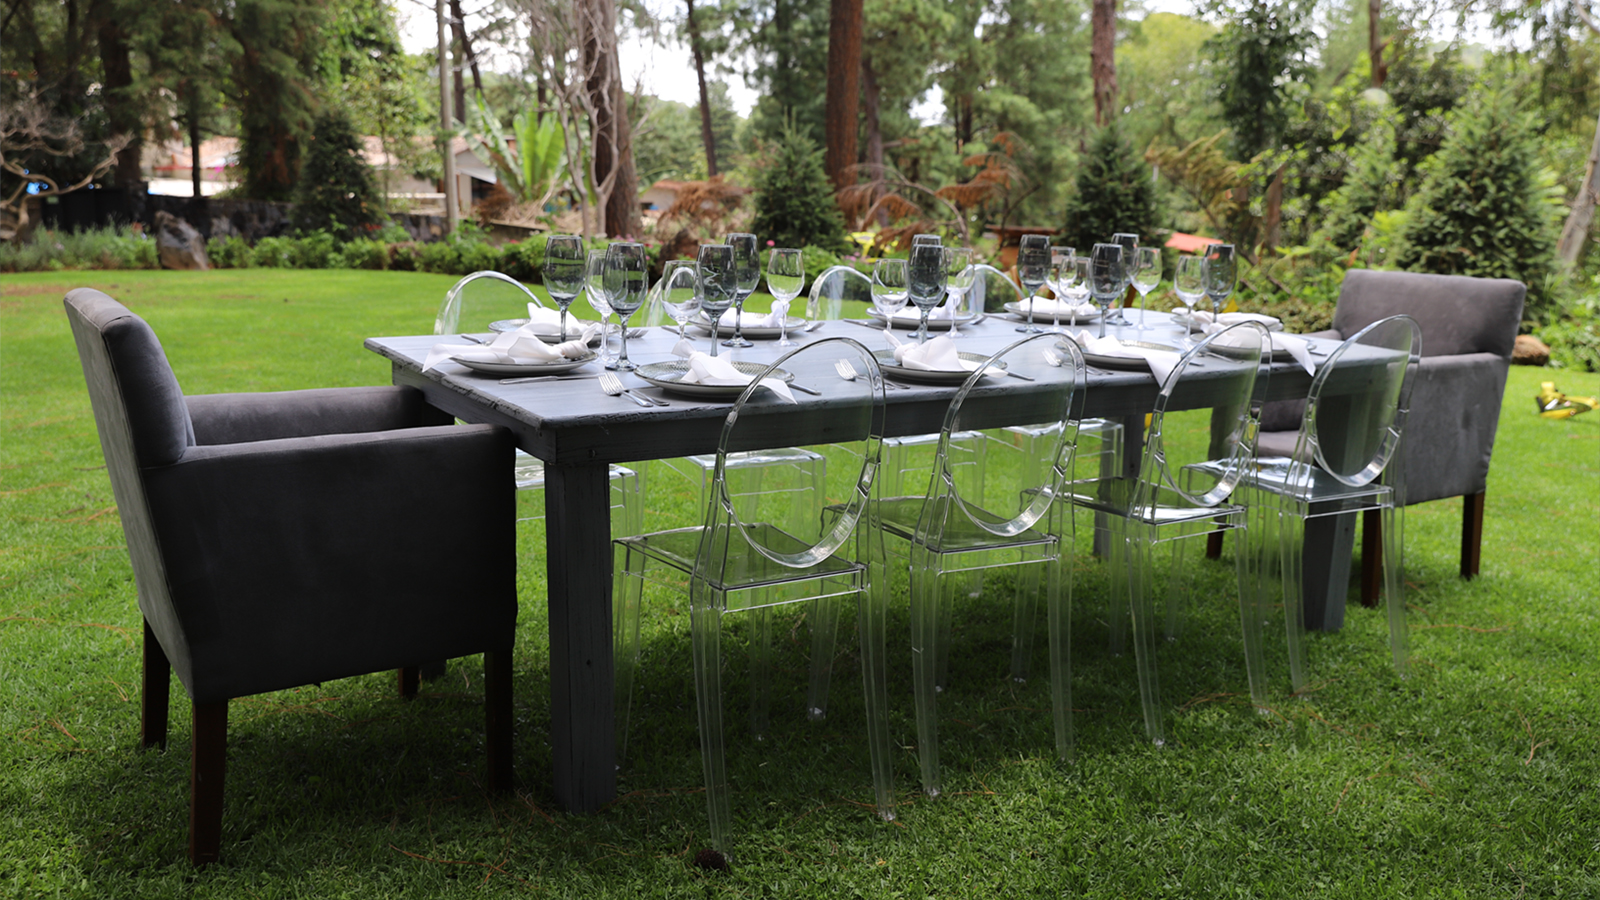 Venta De Sillas Para Eventos Royal Table Renta Y Venta De Sillas Y Mesas Para Eventos